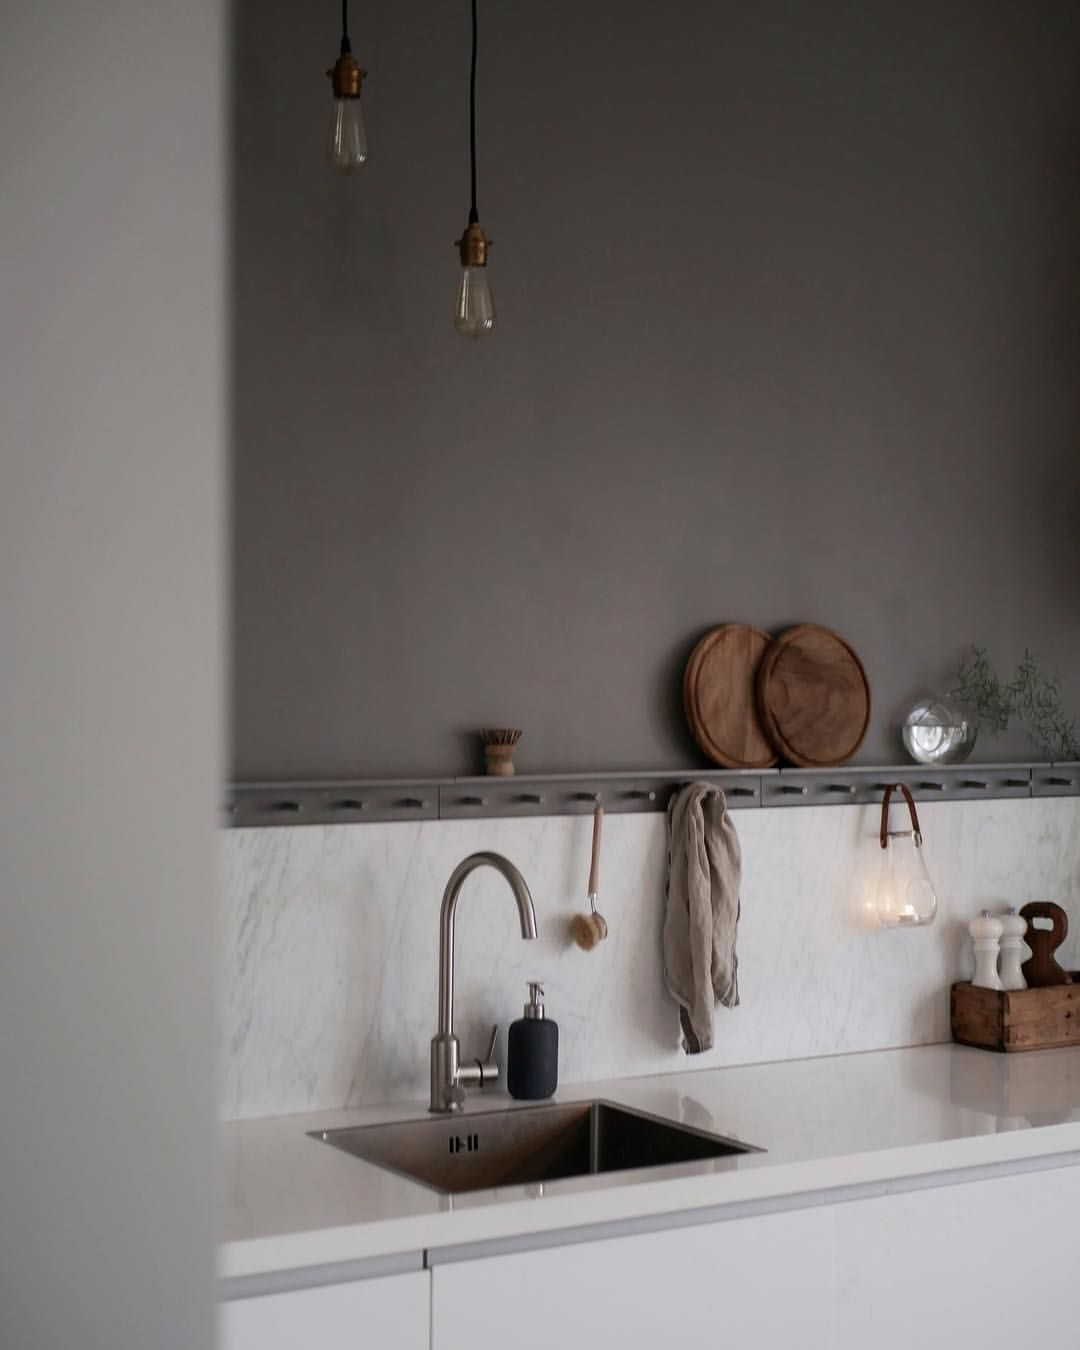 Scandinavian Kitchens Find Your Style Here: Interior Design And Architecture Inspirations: Gensler